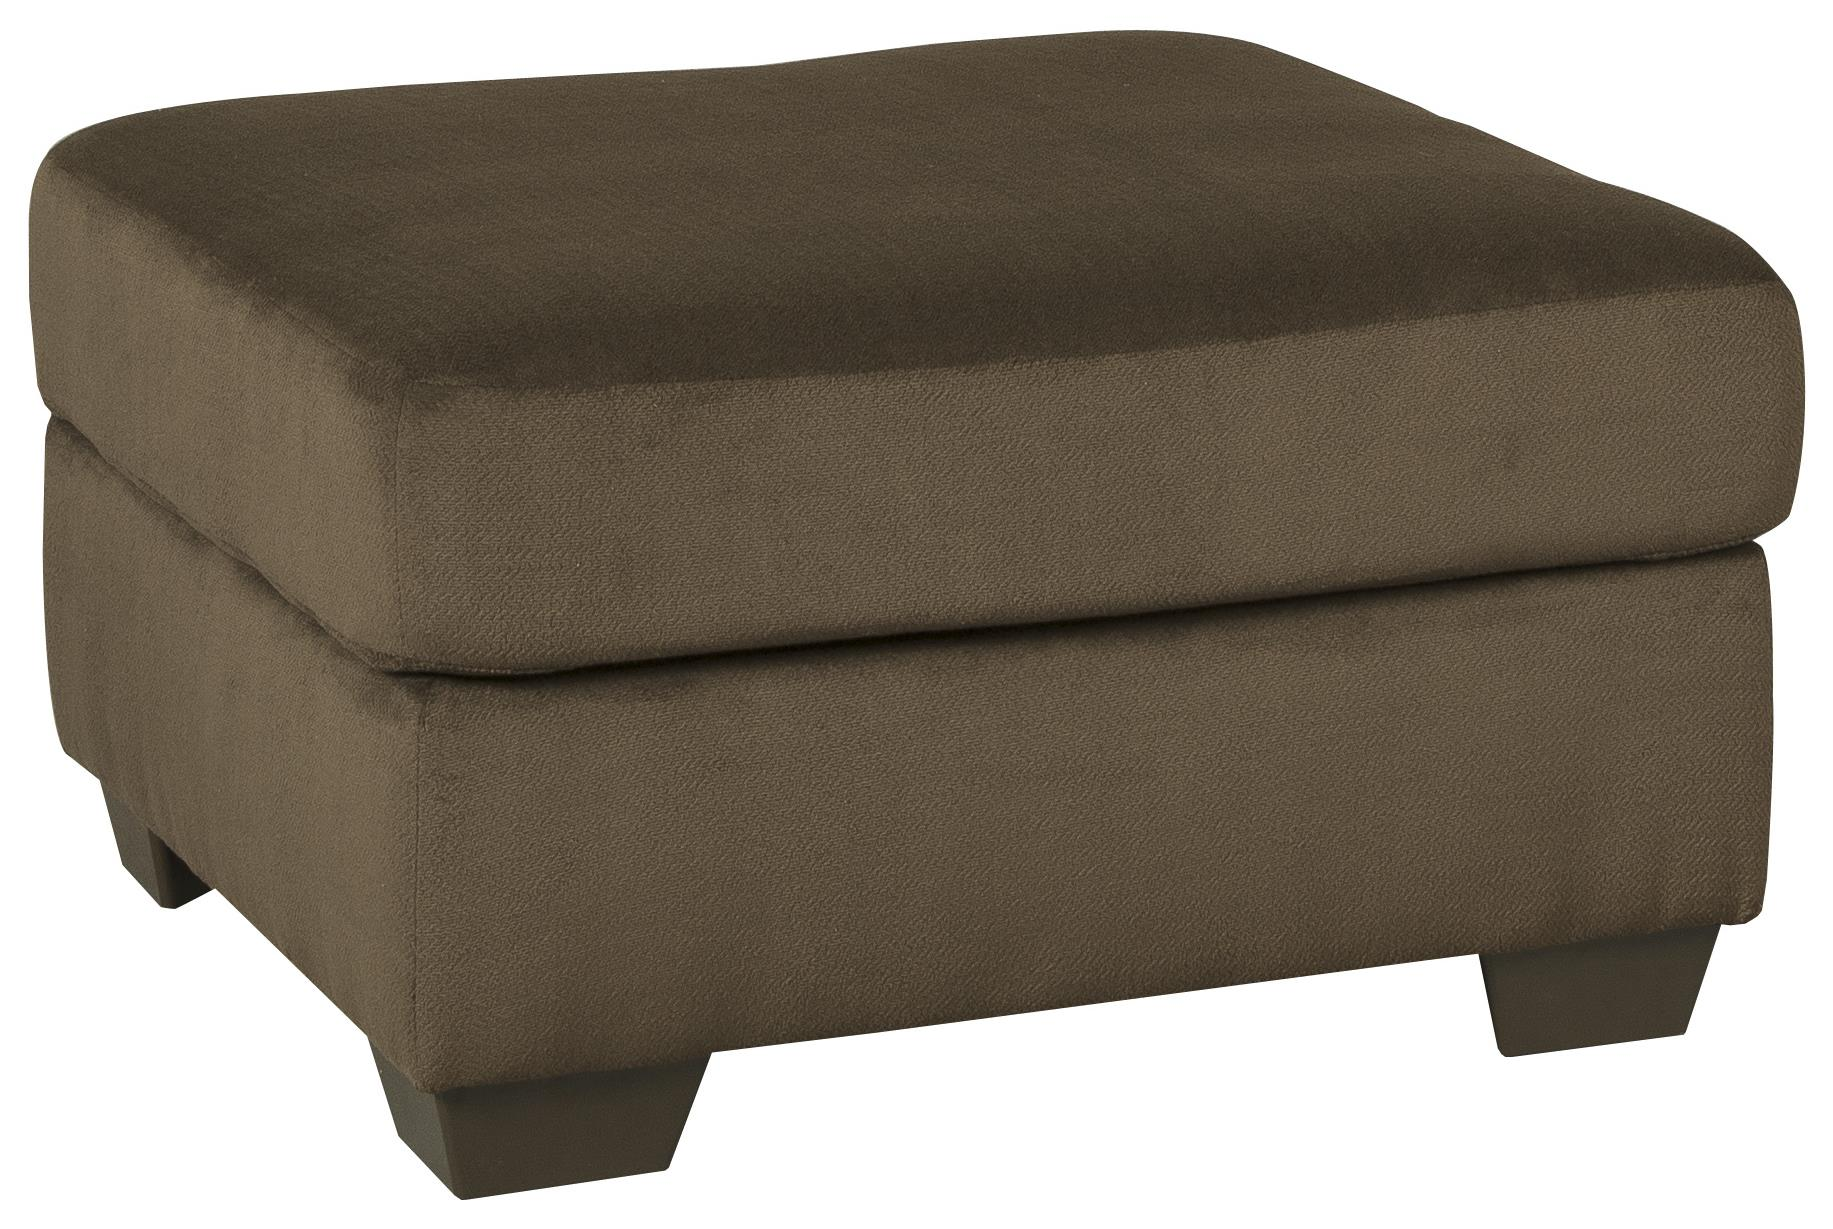 Signature Design by Ashley Dailey Oversized Accent Ottoman - Item Number: 9540308